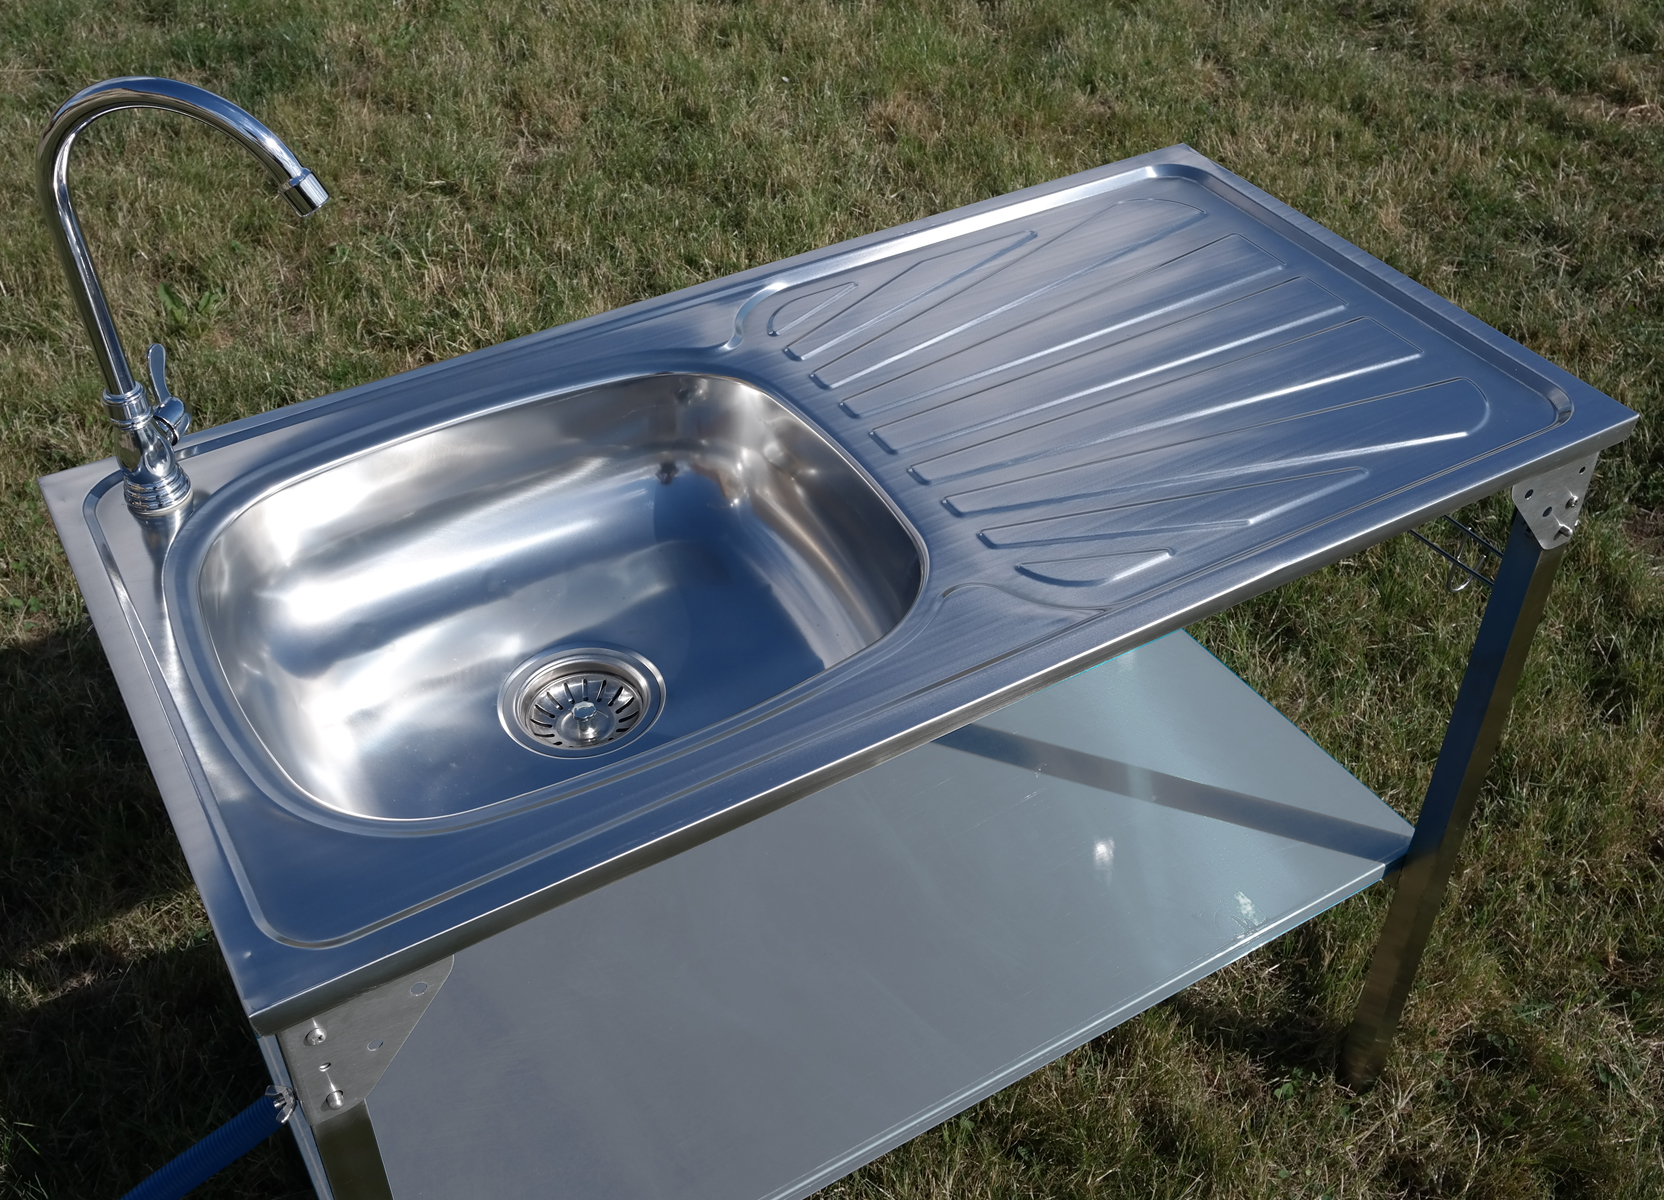 CAMPING SINK OUTDOOR KITCHEN STAINLESS STEEL DRAINING ... on Outdoor Patio Sink id=25588